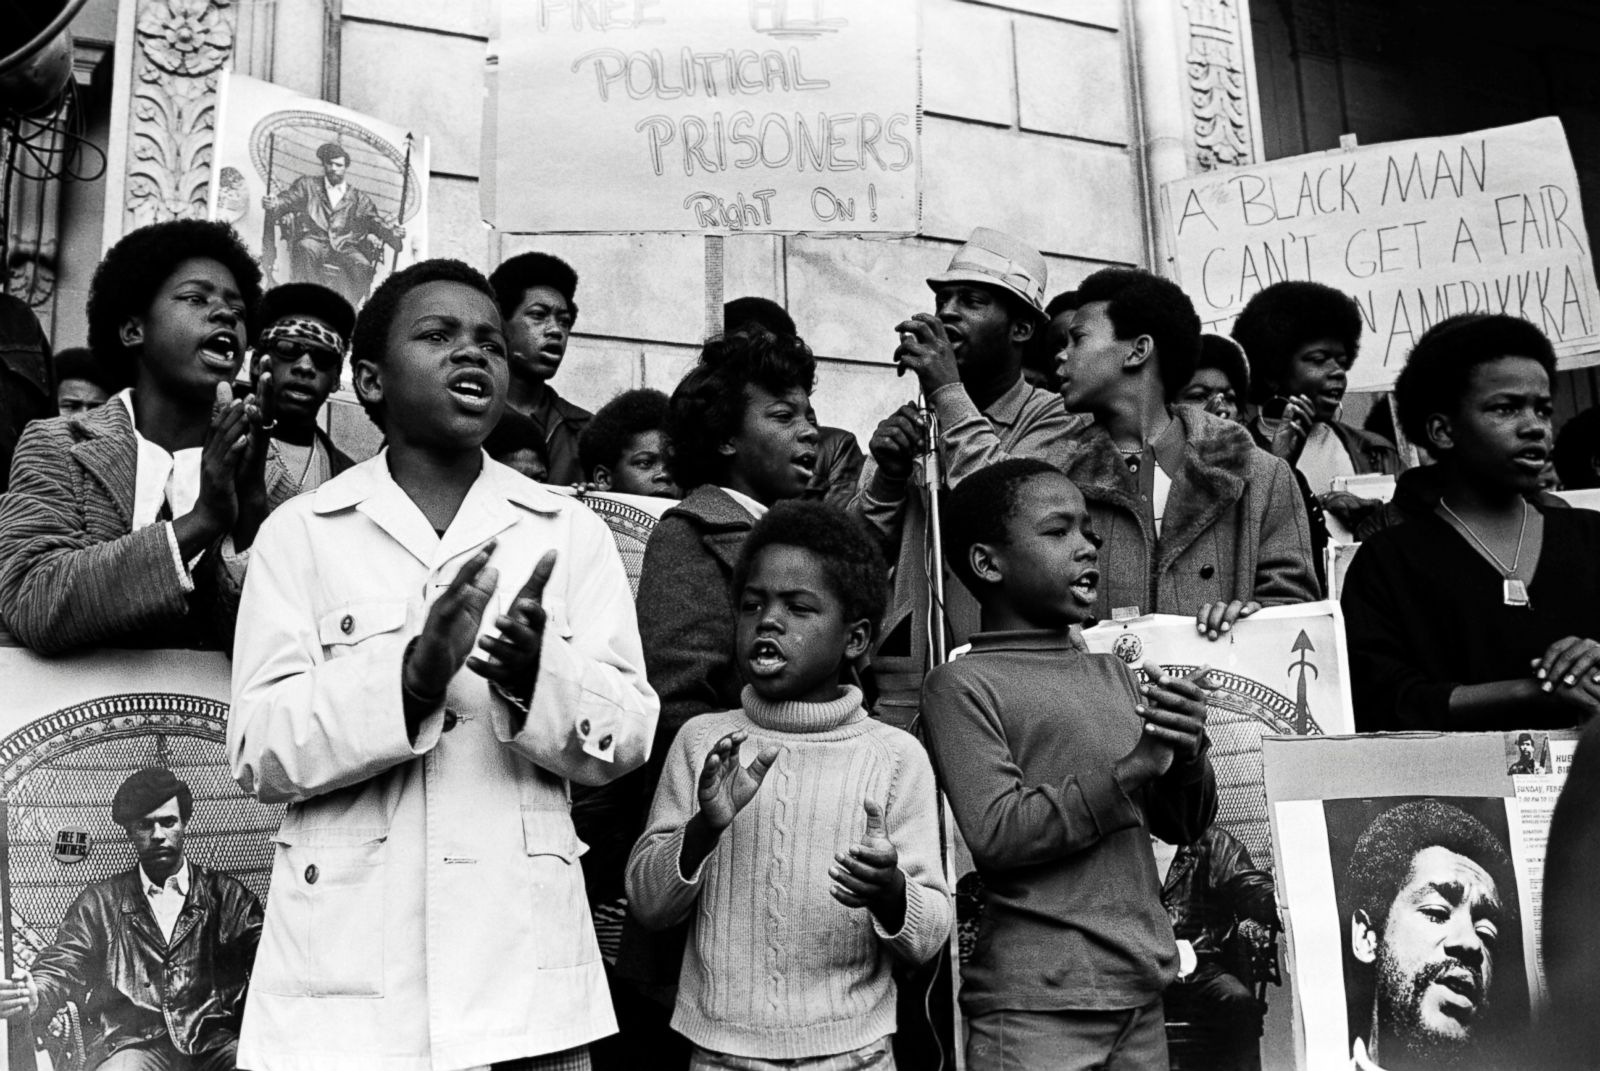 African children at a rally to free political prisoners organized by the Black Panther Party.